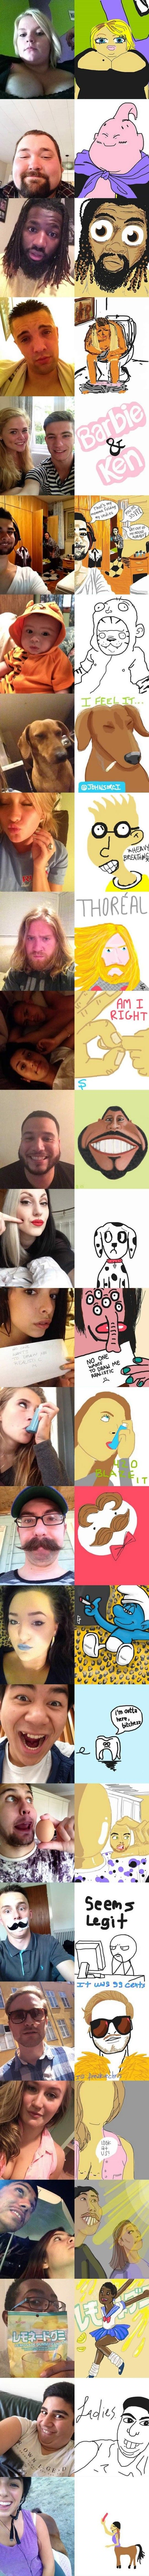 A New Facbook Game: People post selfies, other people draw them.